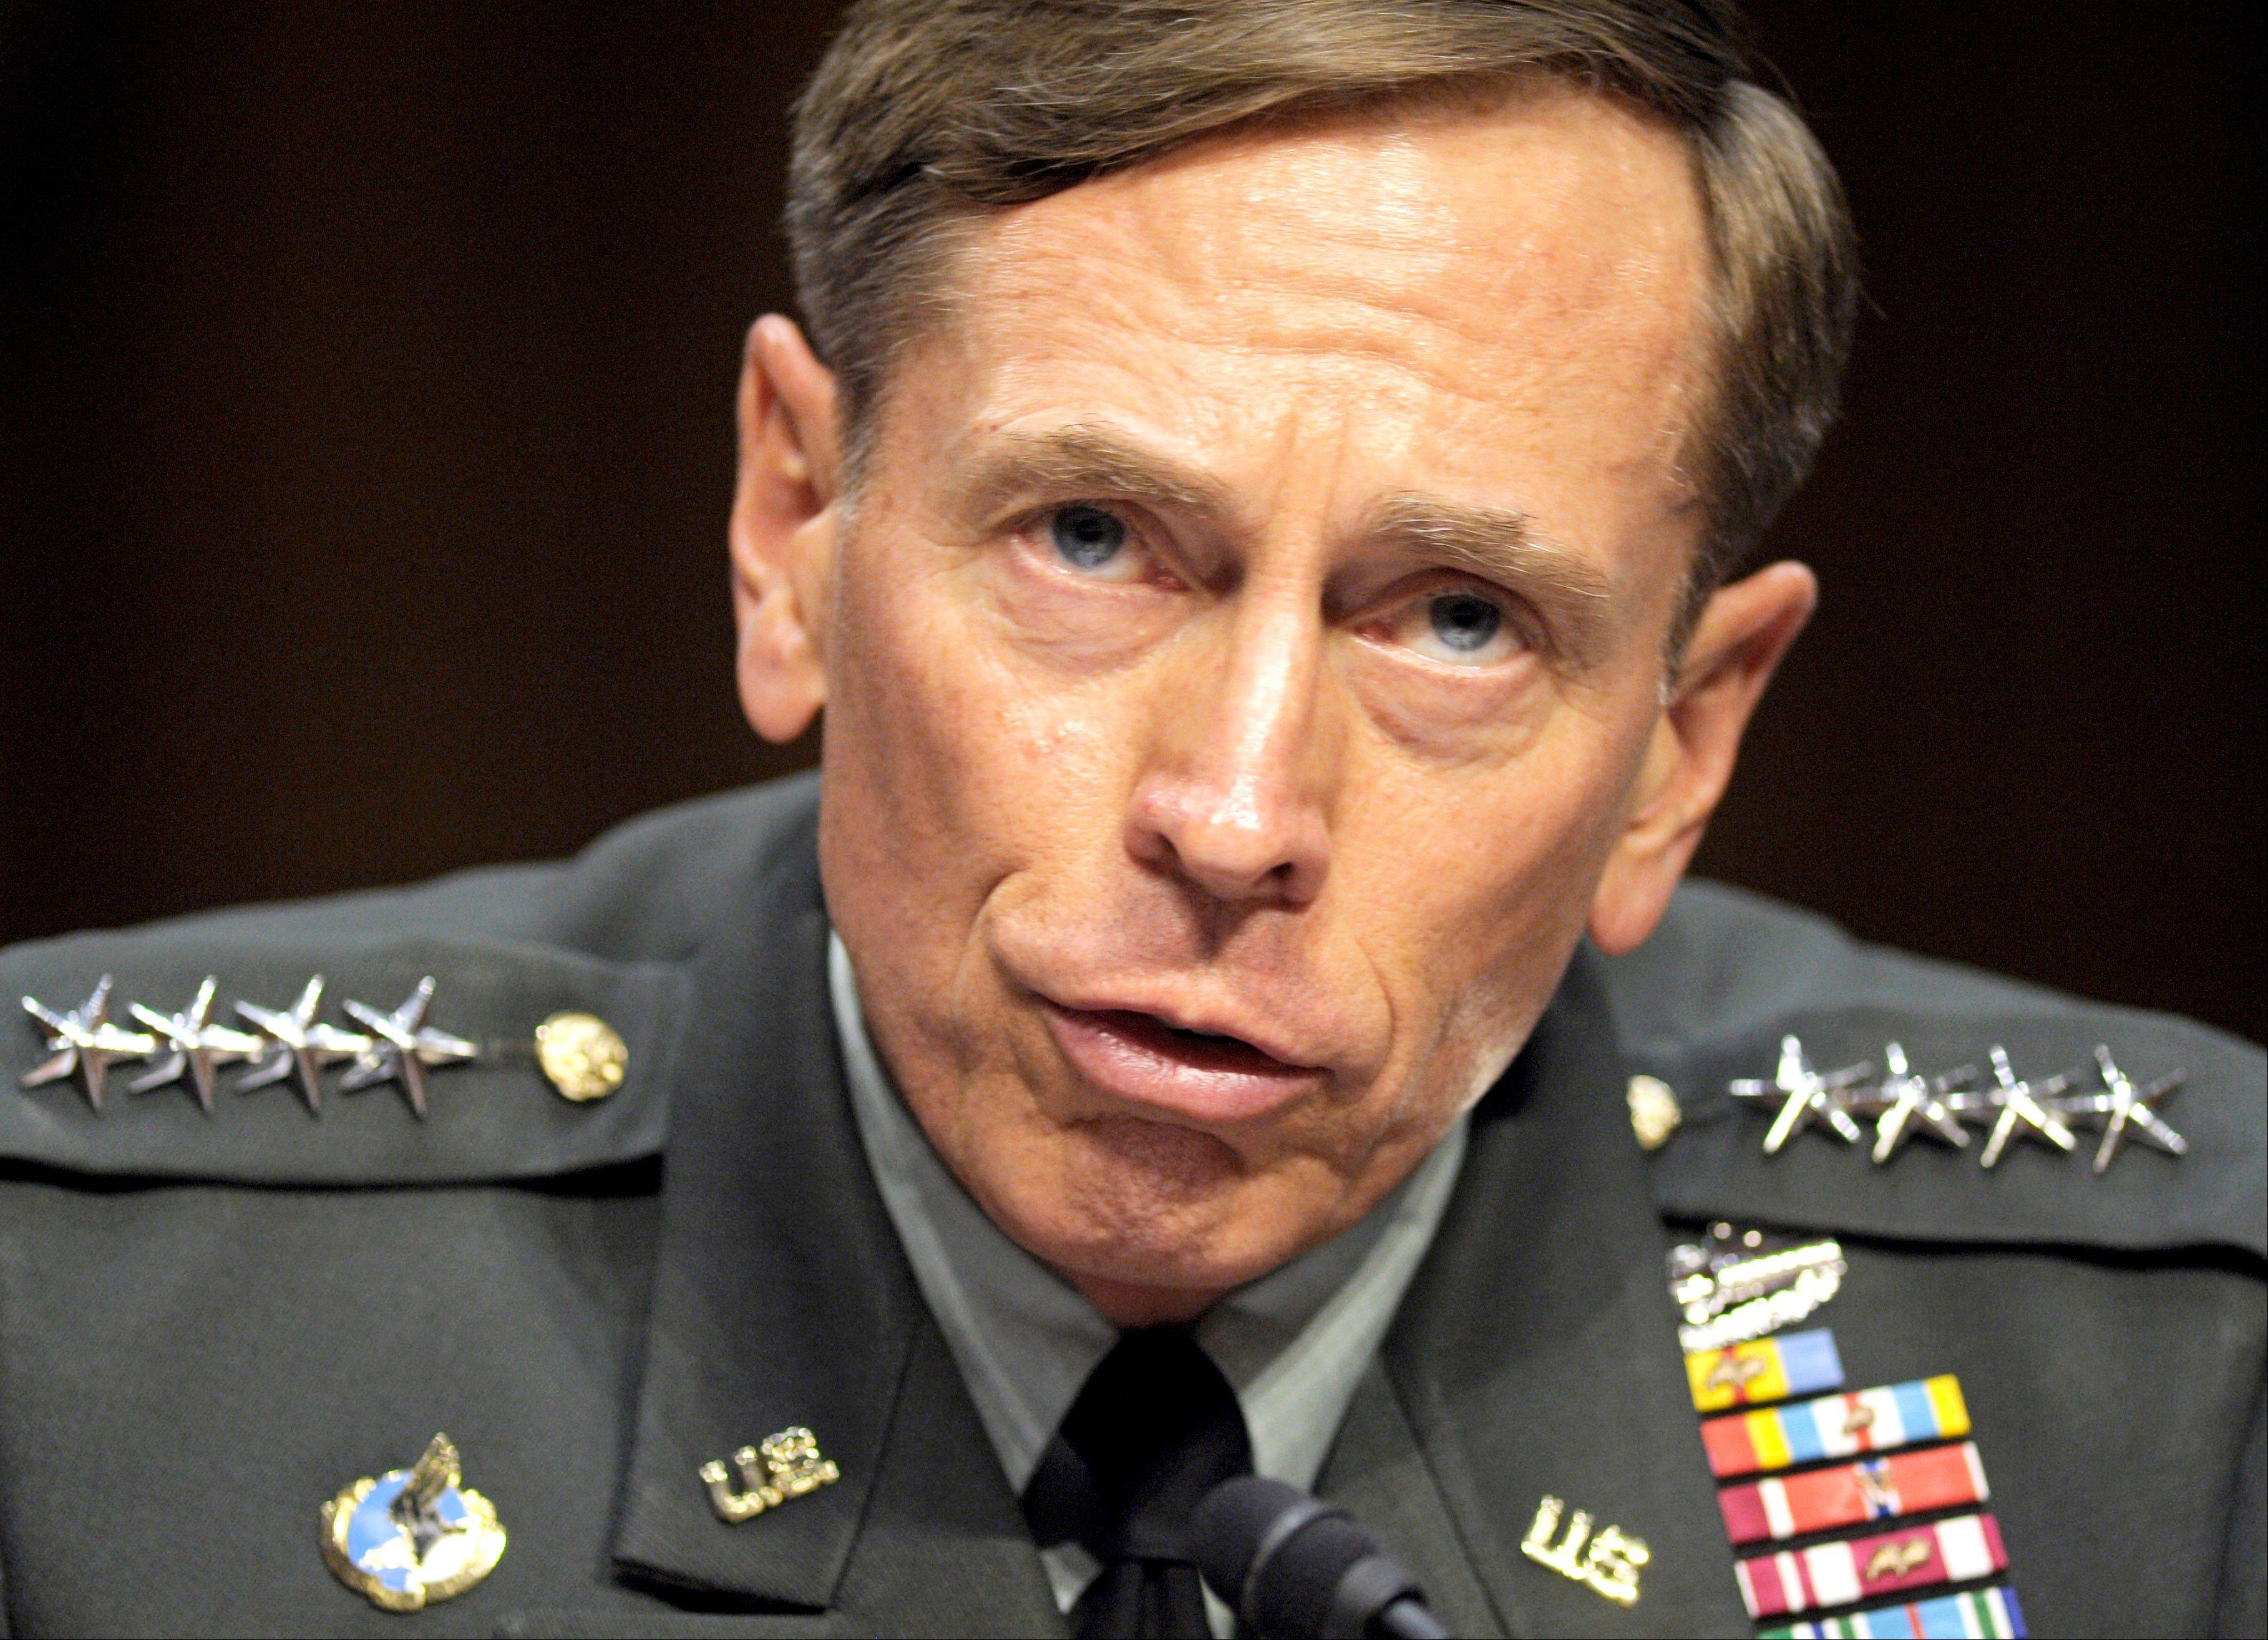 Then-CIA Director-desigate Gen. David Petraeus testifies on Capitol Hill in Washington.